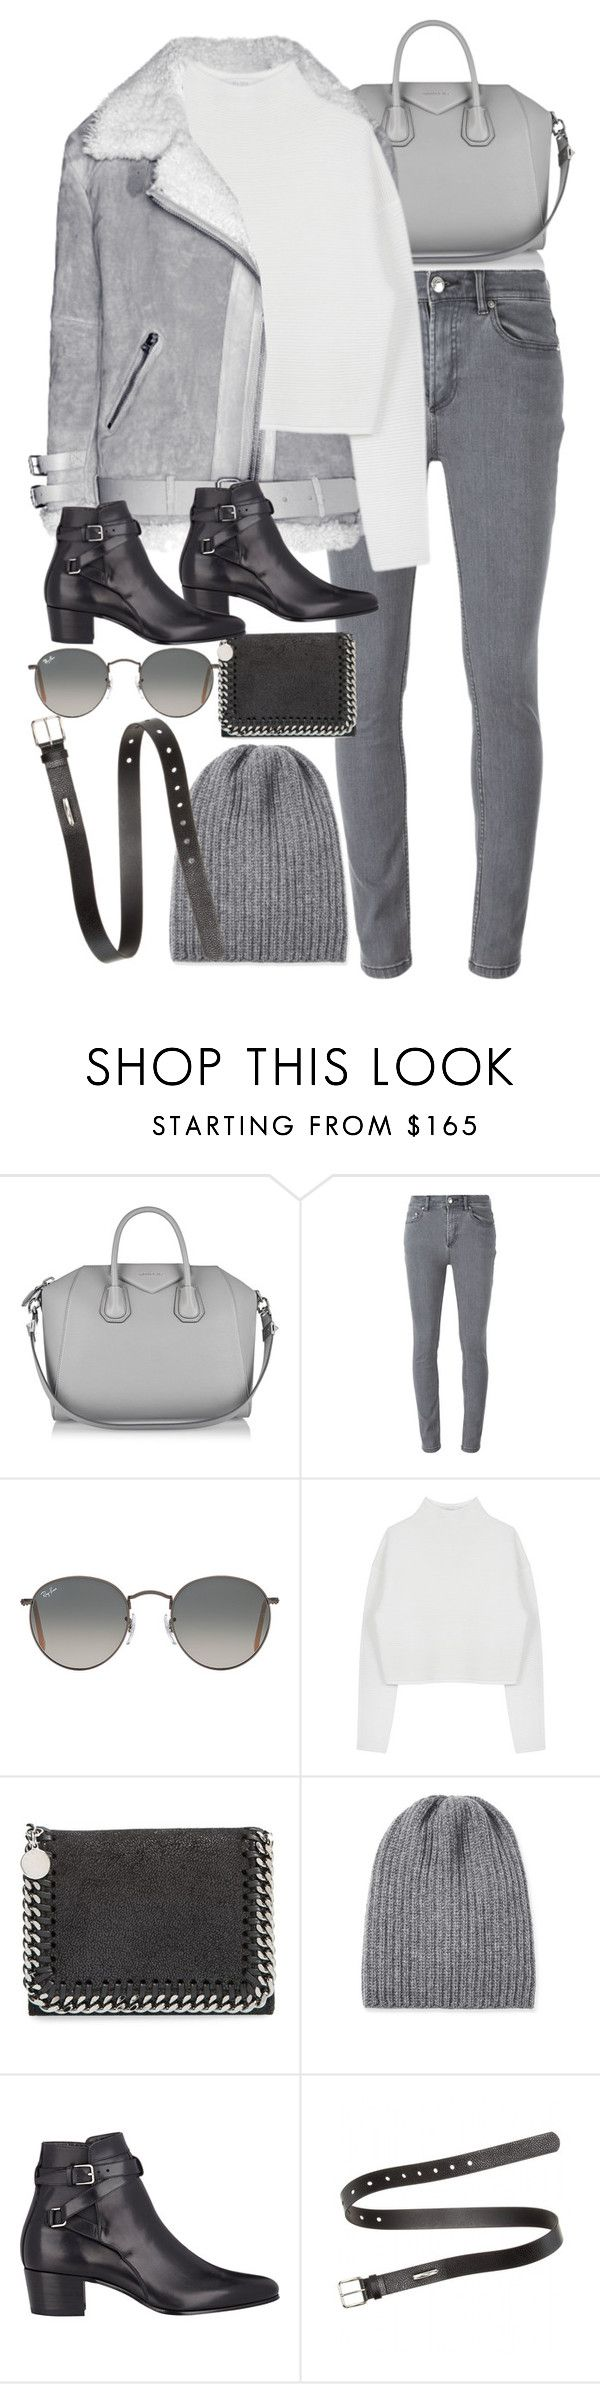 """Untitled #8443"" by nikka-phillips ❤ liked on Polyvore featuring Givenchy, Marc by Marc Jacobs, Ray-Ban, Dion Lee, STELLA McCARTNEY, Inverni, Yves Saint Laurent, Acne Studios, women's clothing and women's fashion"